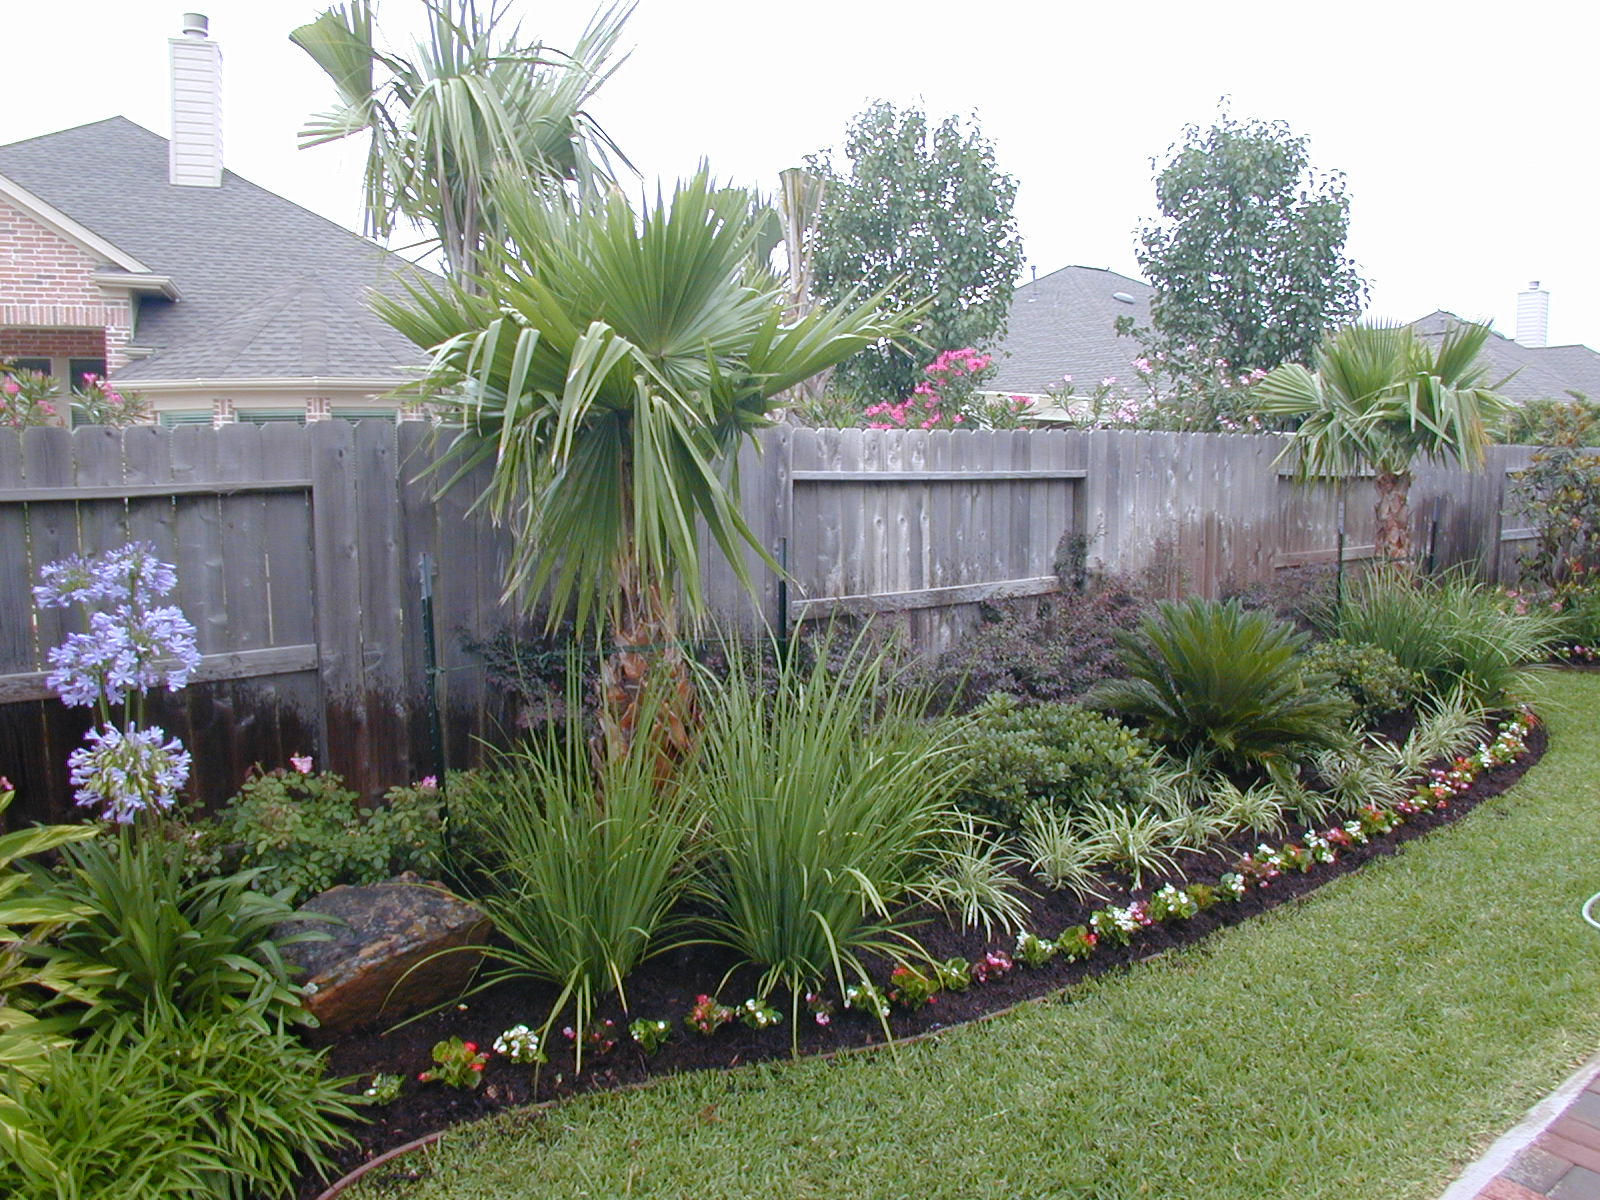 Landscaping Plans Free Easy Landscaping Plans With Images regarding 15 Smart Initiatives of How to Upgrade Backyard Landscaping Designs Free